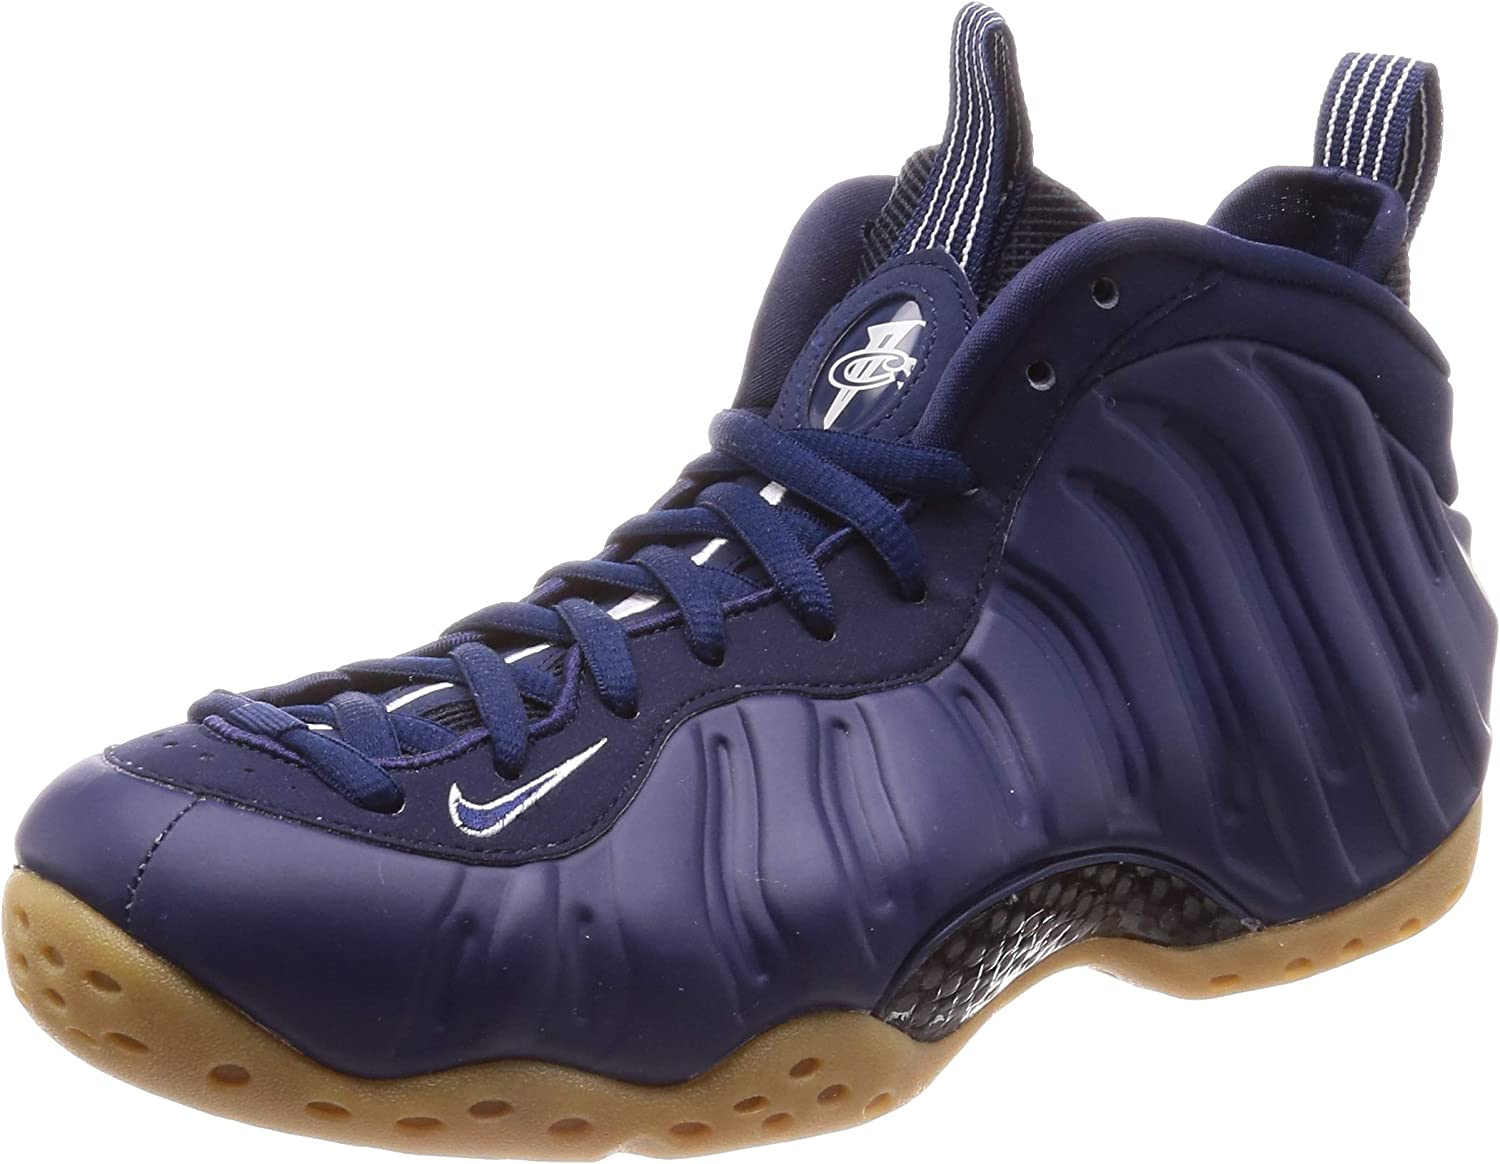 Nike Air Foamposite One XX QS nebula alternate galaxy 4